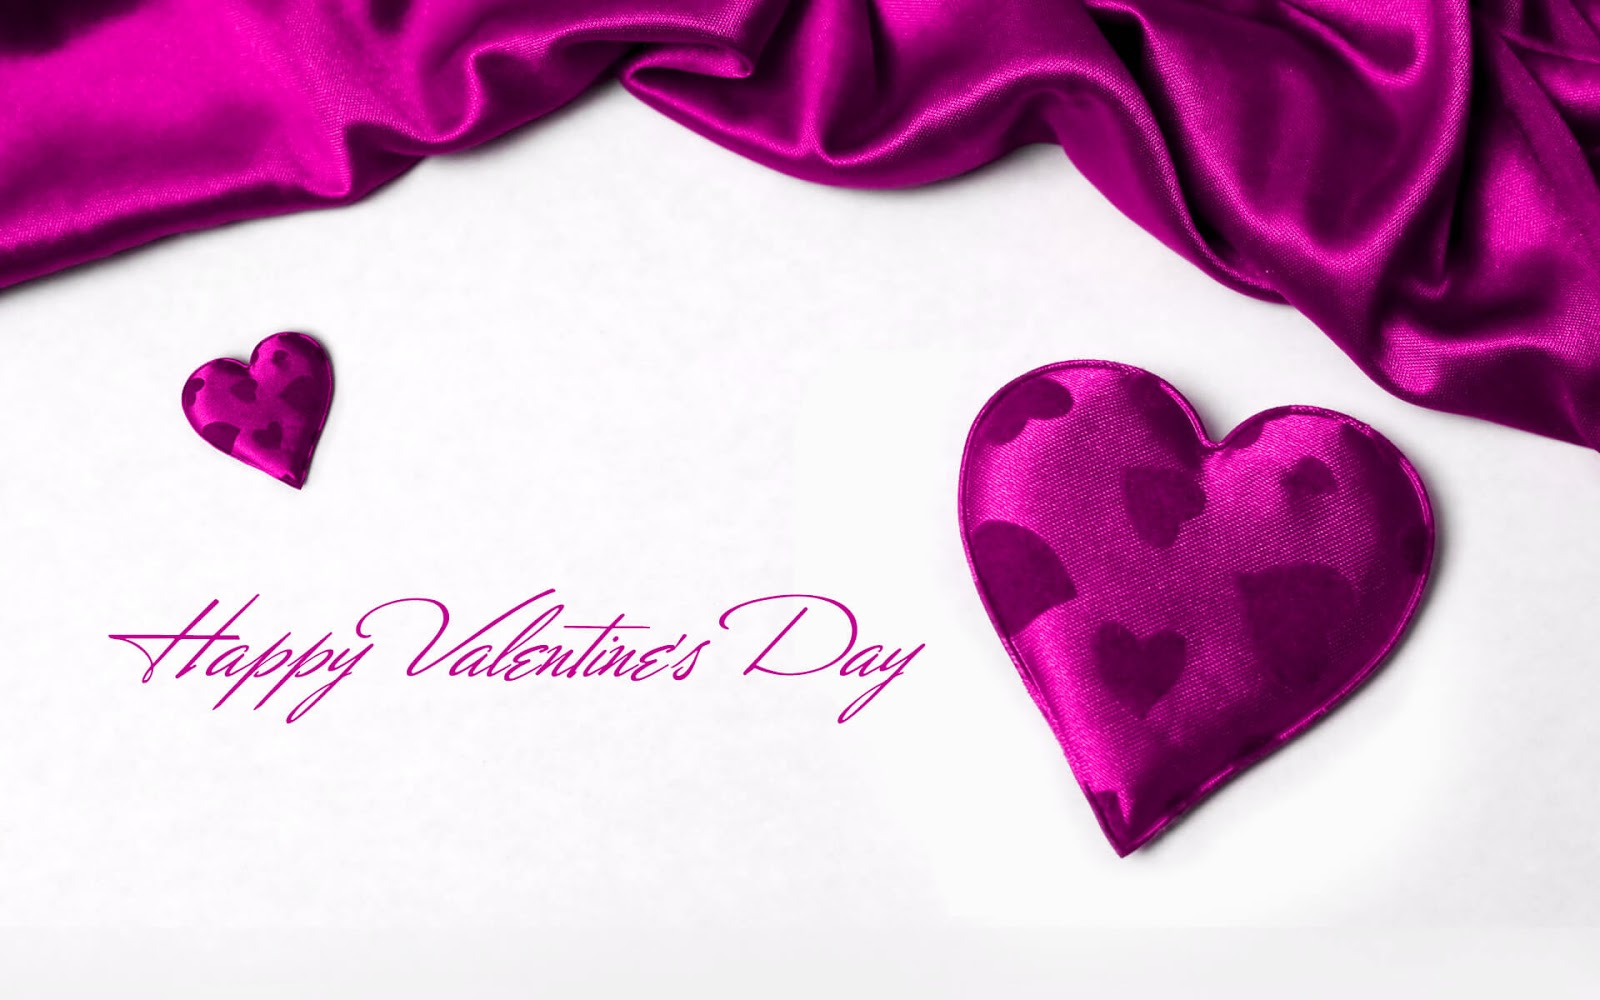 Happy Valentines Day HD Wallpaper Image Wishes Messages Quote Greeting